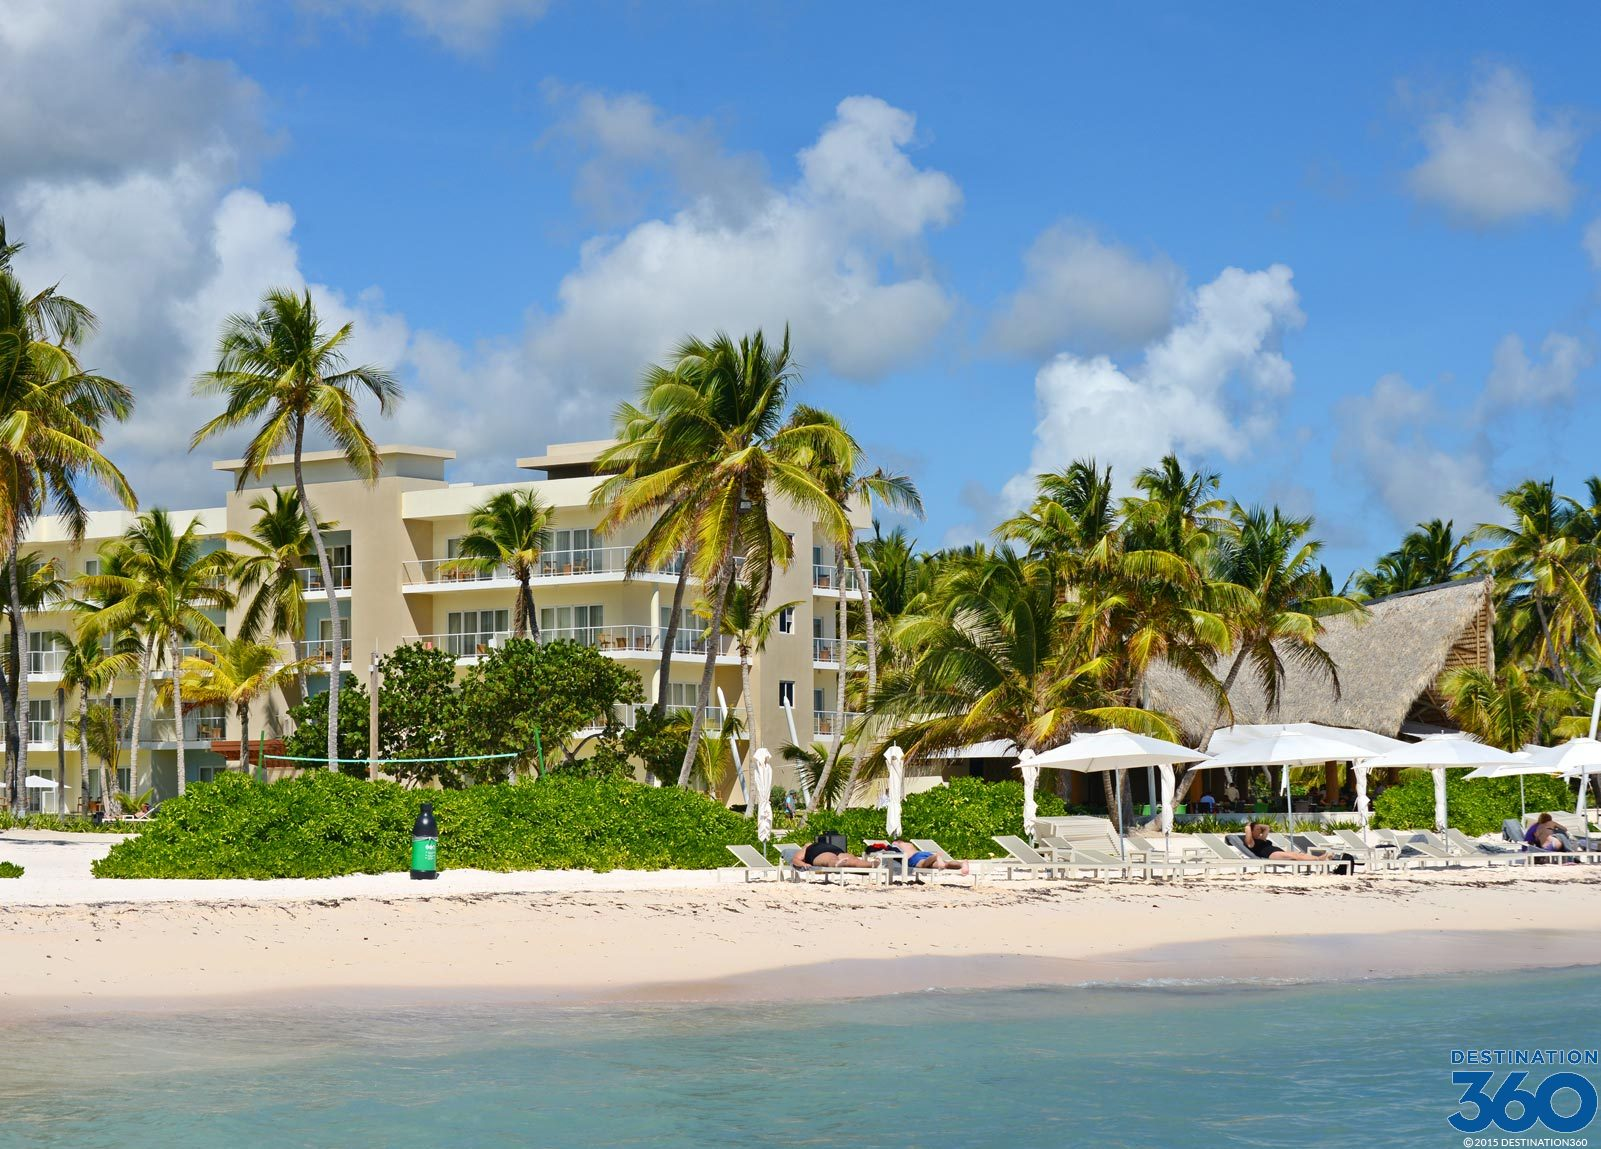 Punta cana hotels punta cana beach hotels for Vacations to punta cana